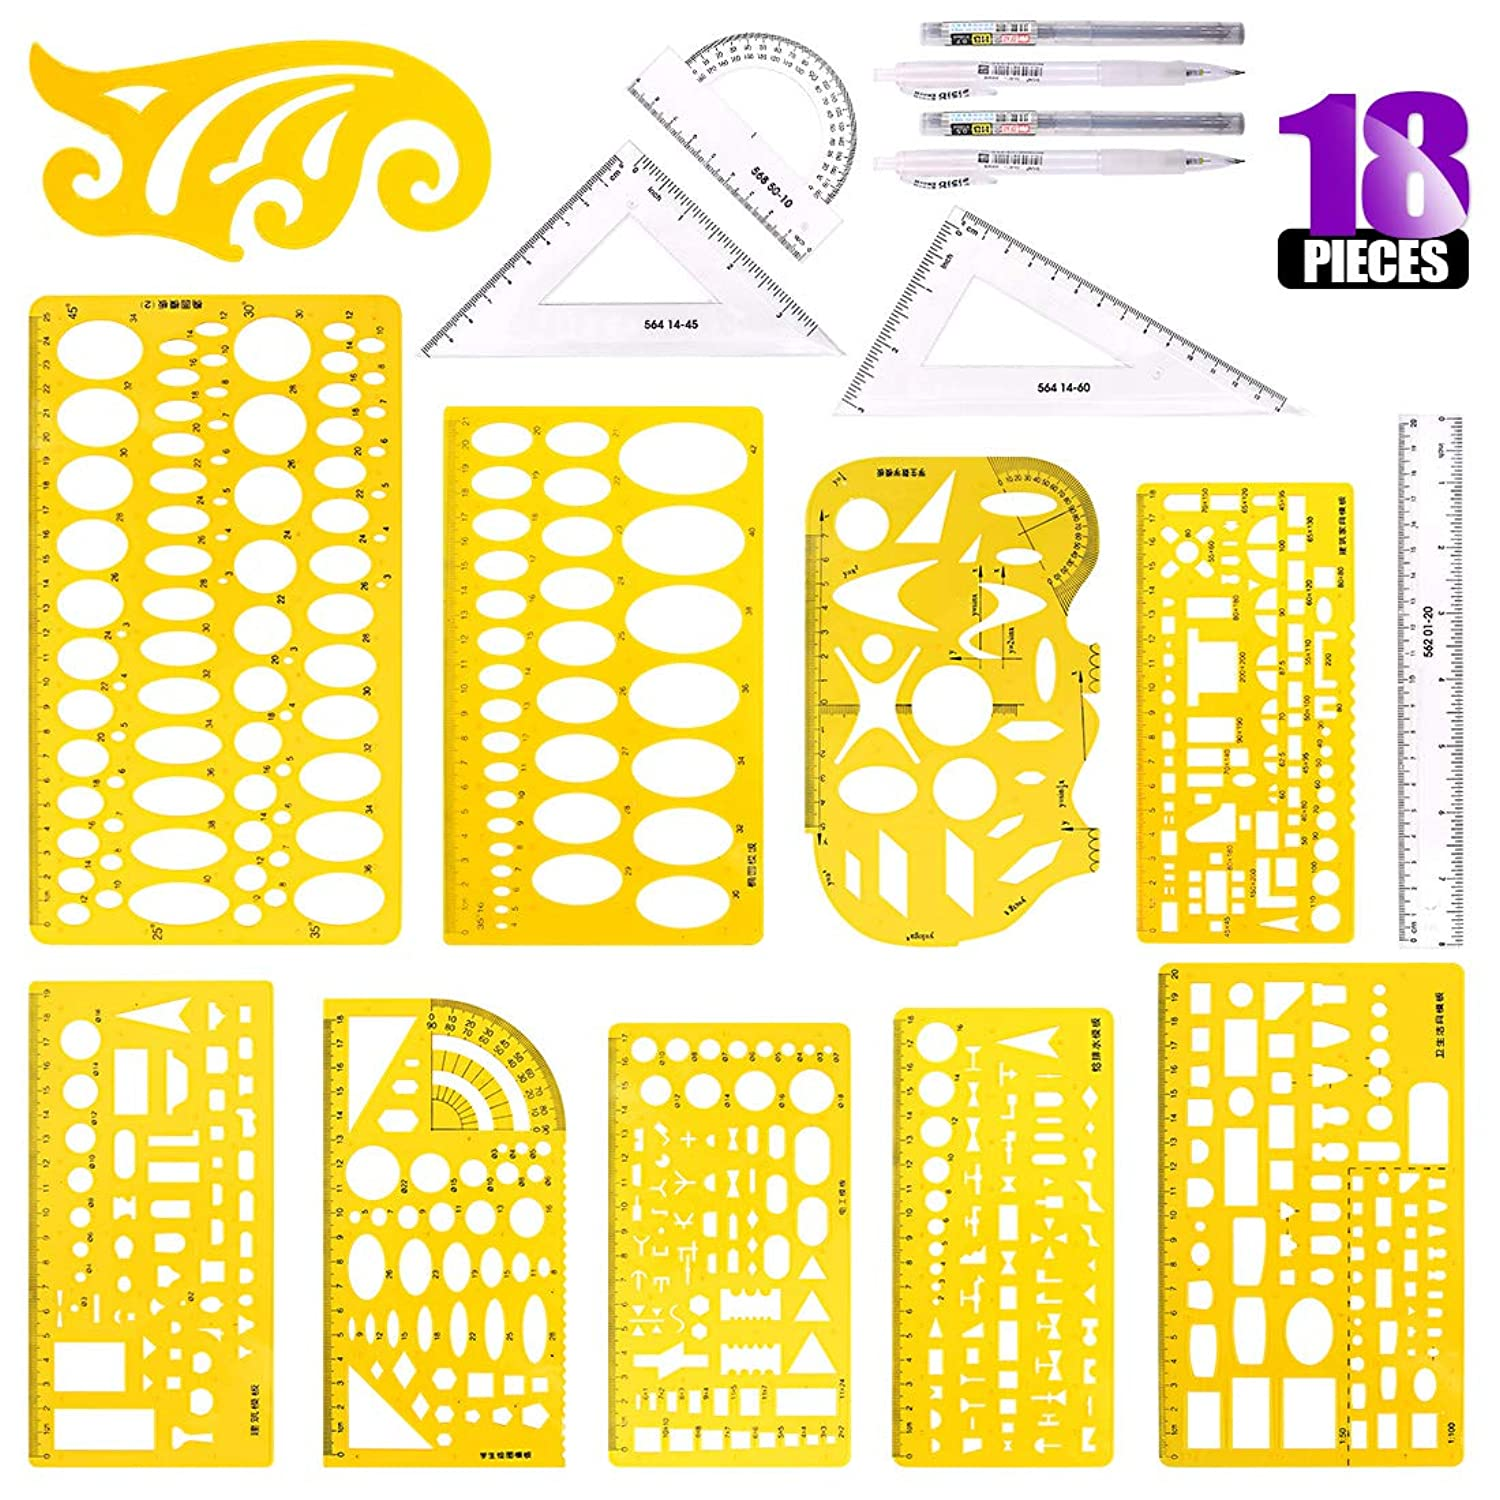 Swpeet 18Pcs Plastic Yellow Geometric Drawings Templates Kit, 10 Different Geometric Measuring Drawings Templates Stencils with 2Pcs Pencil and 5Pcs Measuring Ruler for Drawing Engineering Drafting